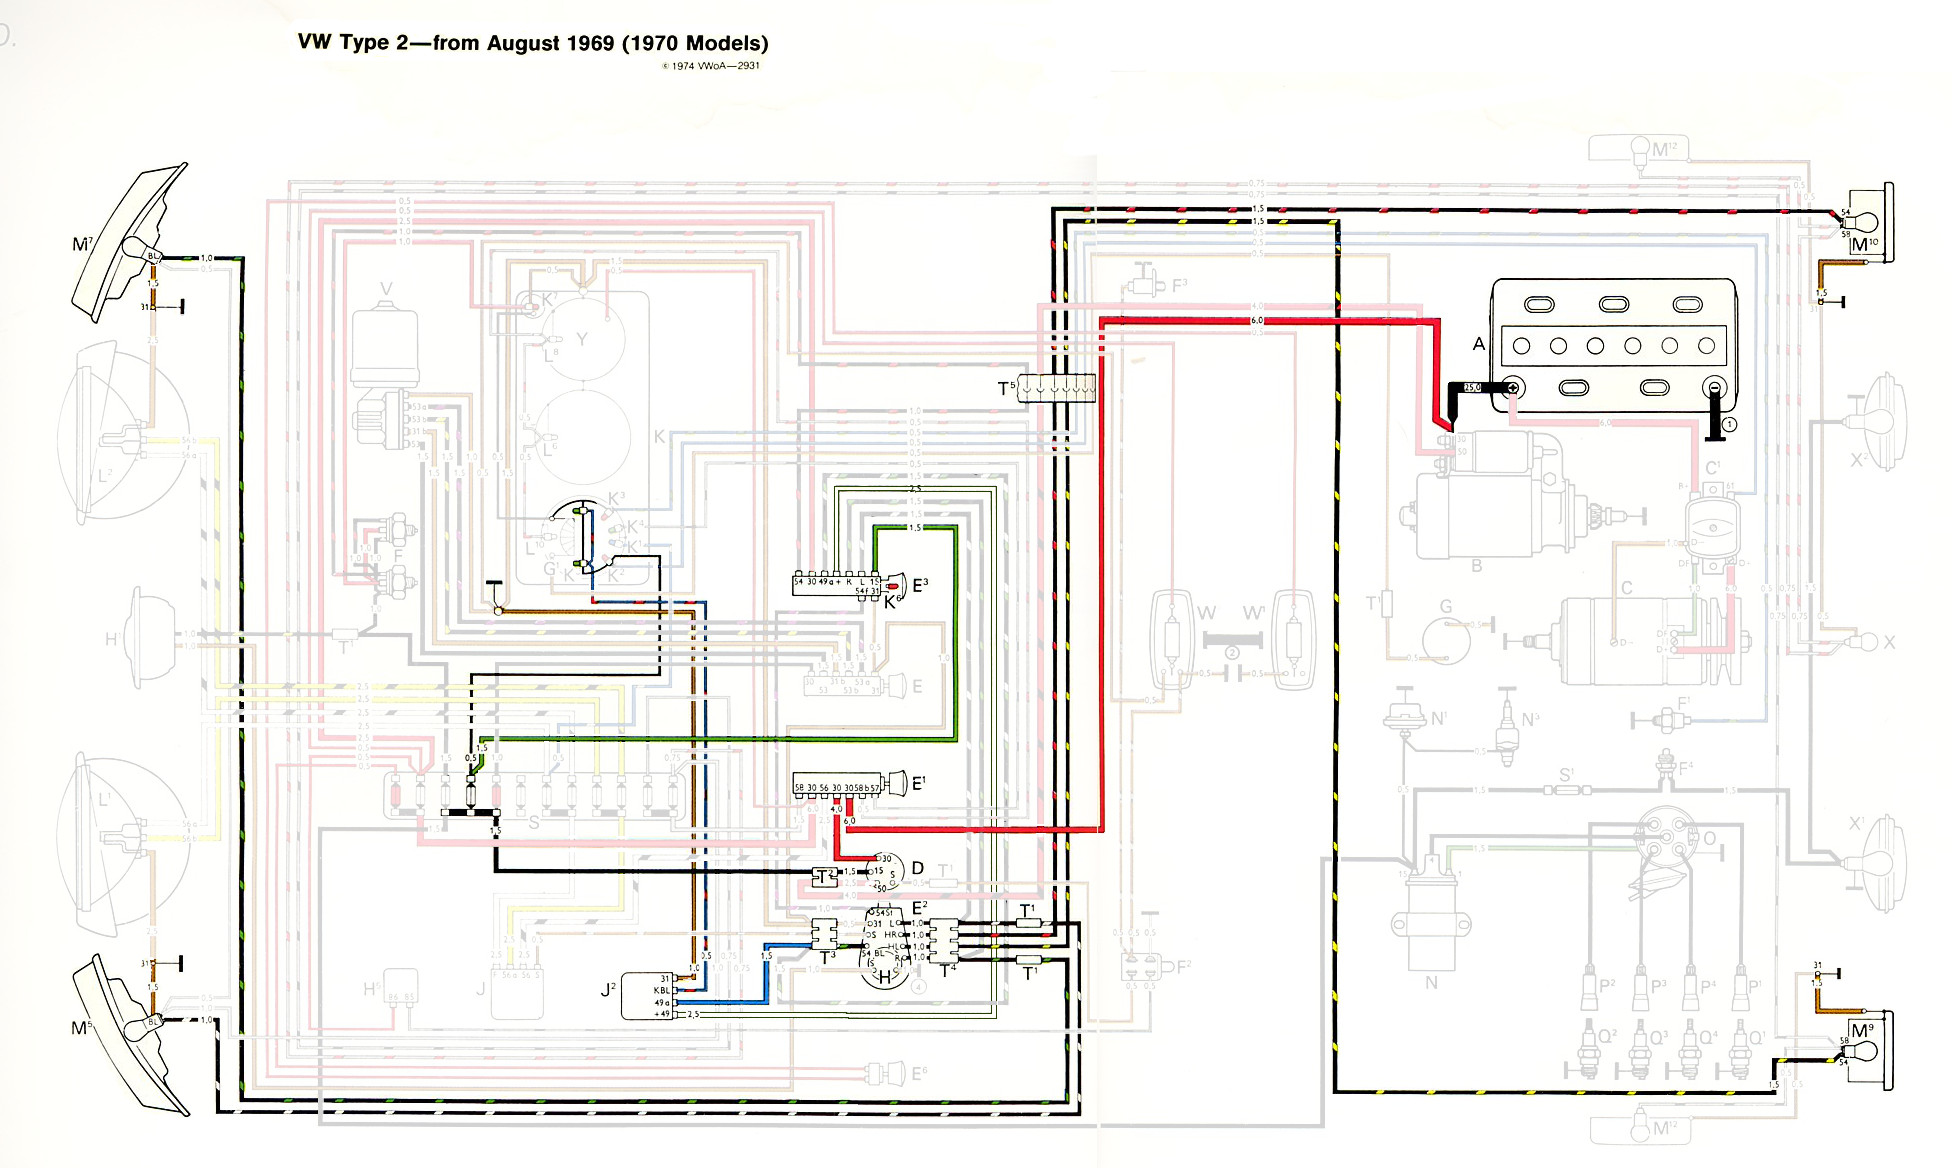 1970bus_signals 1970 vw beetle wiring diagram 1969 vw beetle turn signal wiring 1971 vw bus wiring diagram at n-0.co